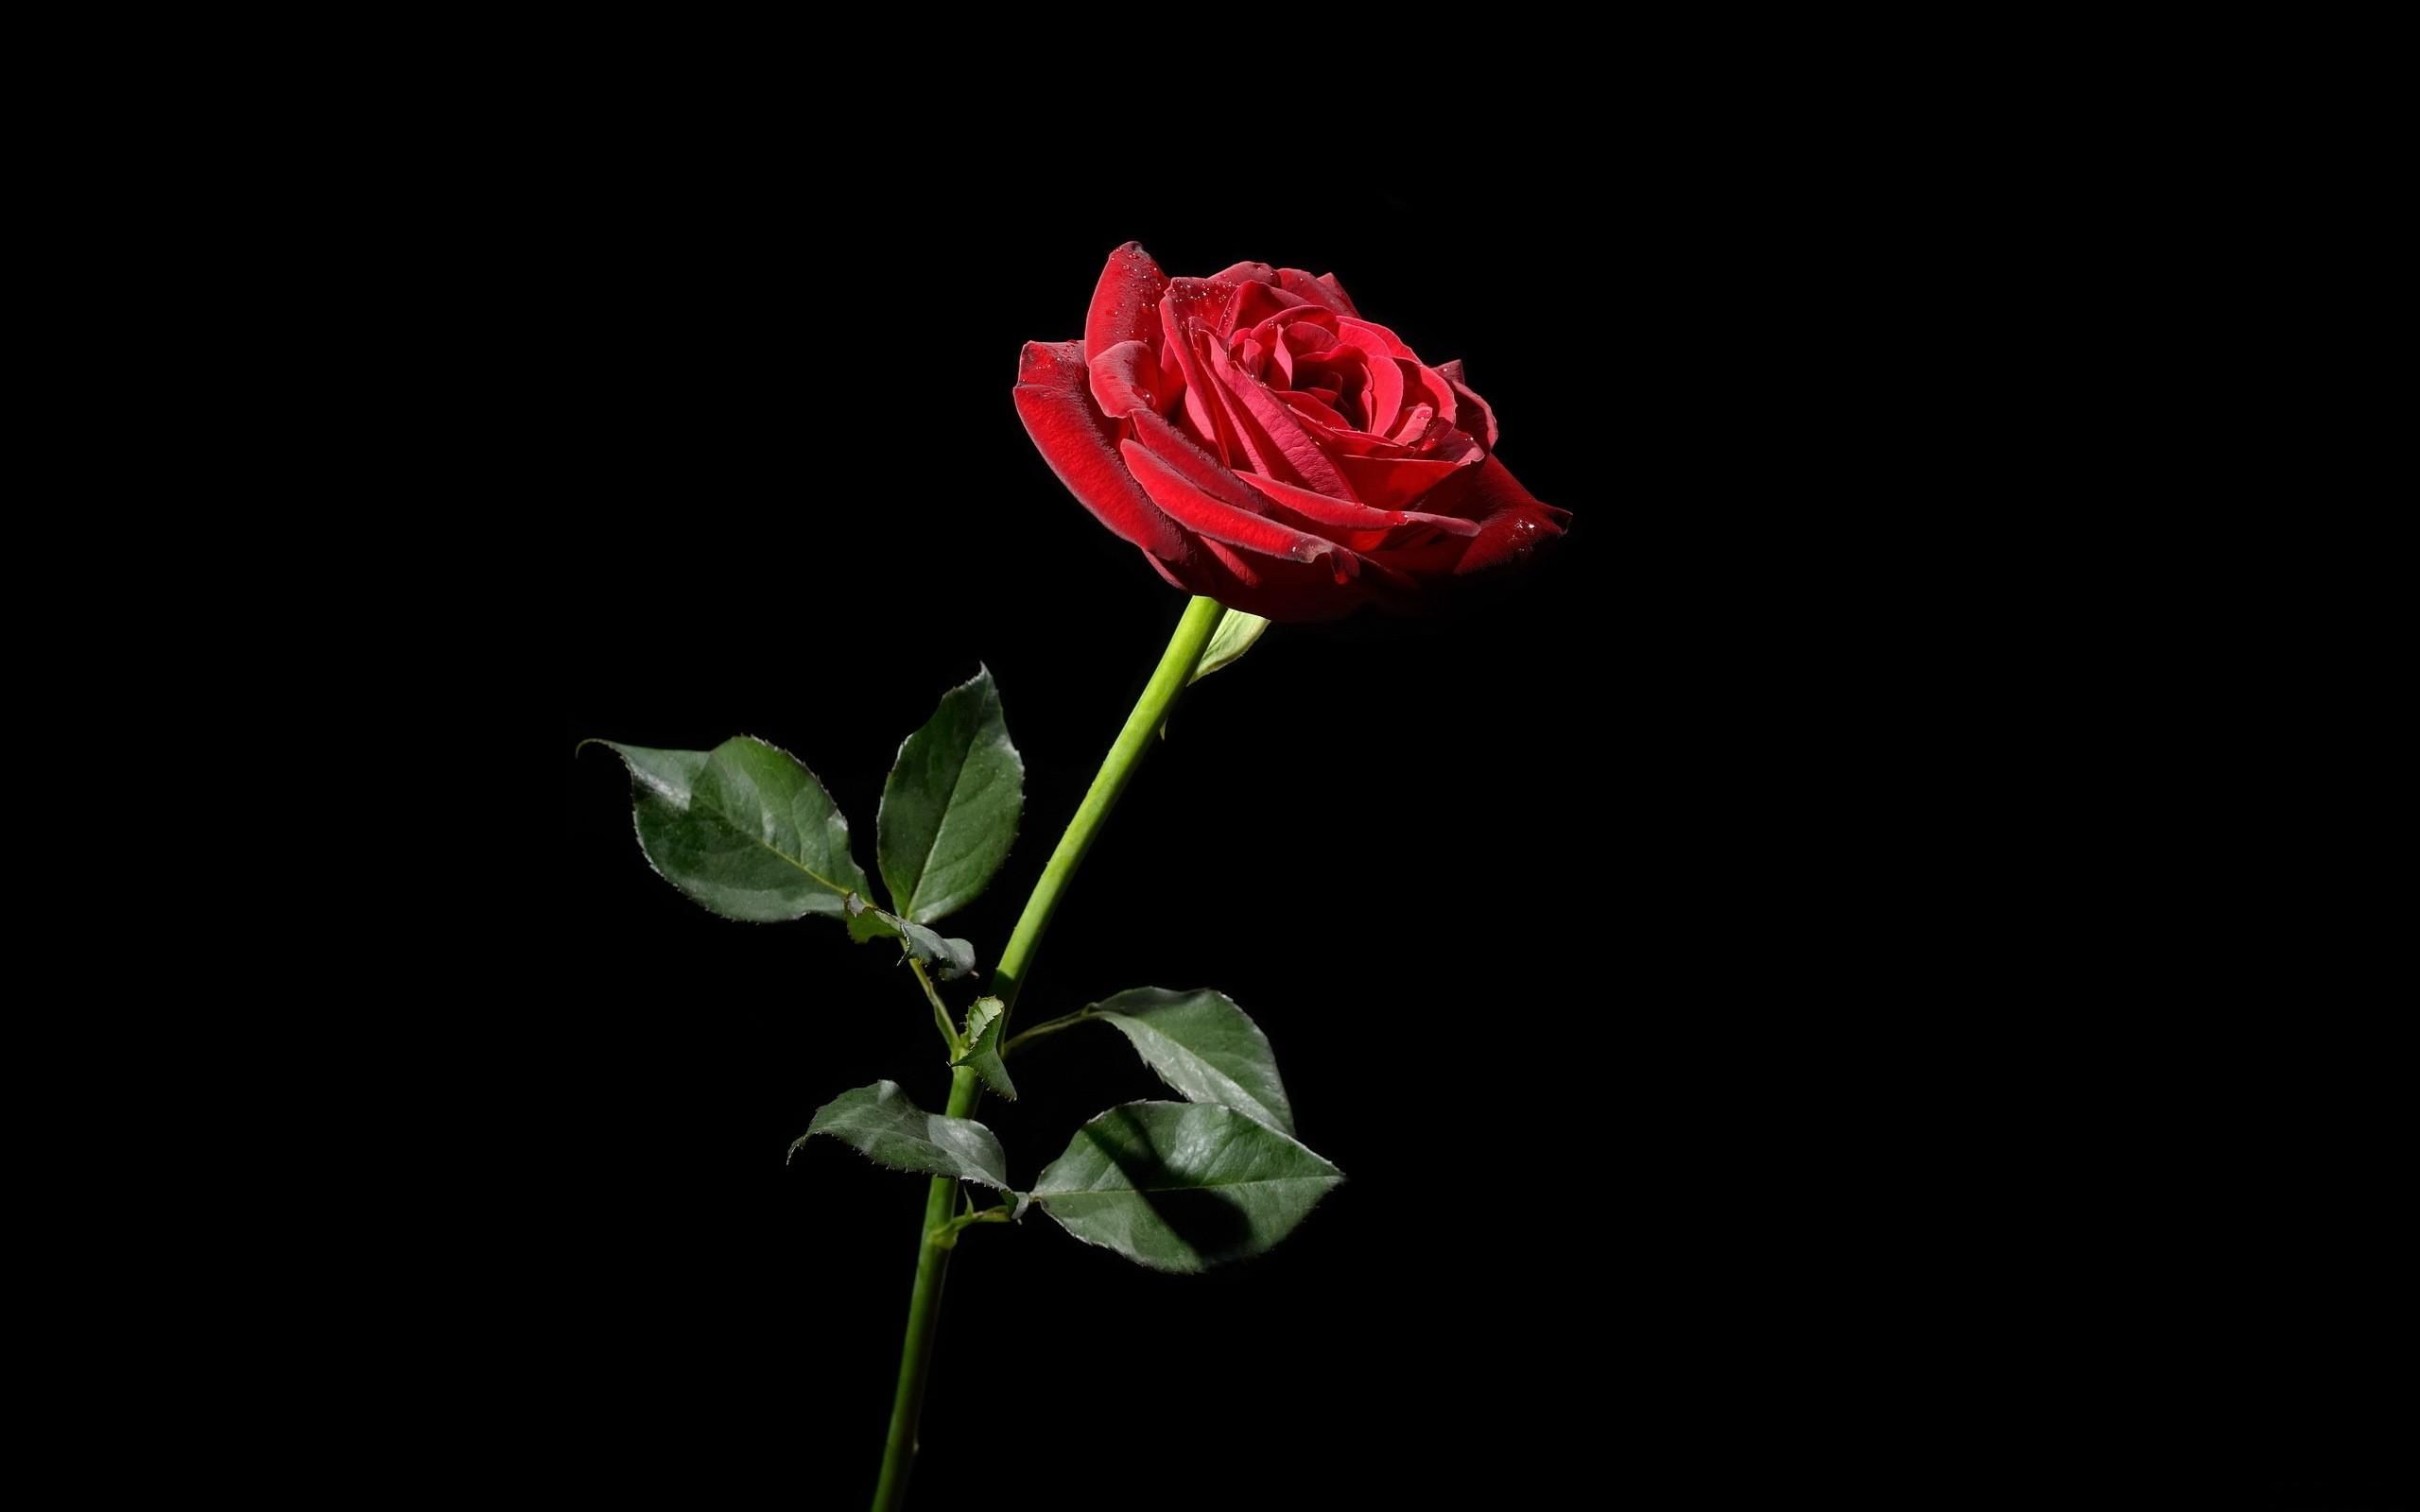 2560x1600 dongetrabi: Black And White Red Rose Wallpaper Images